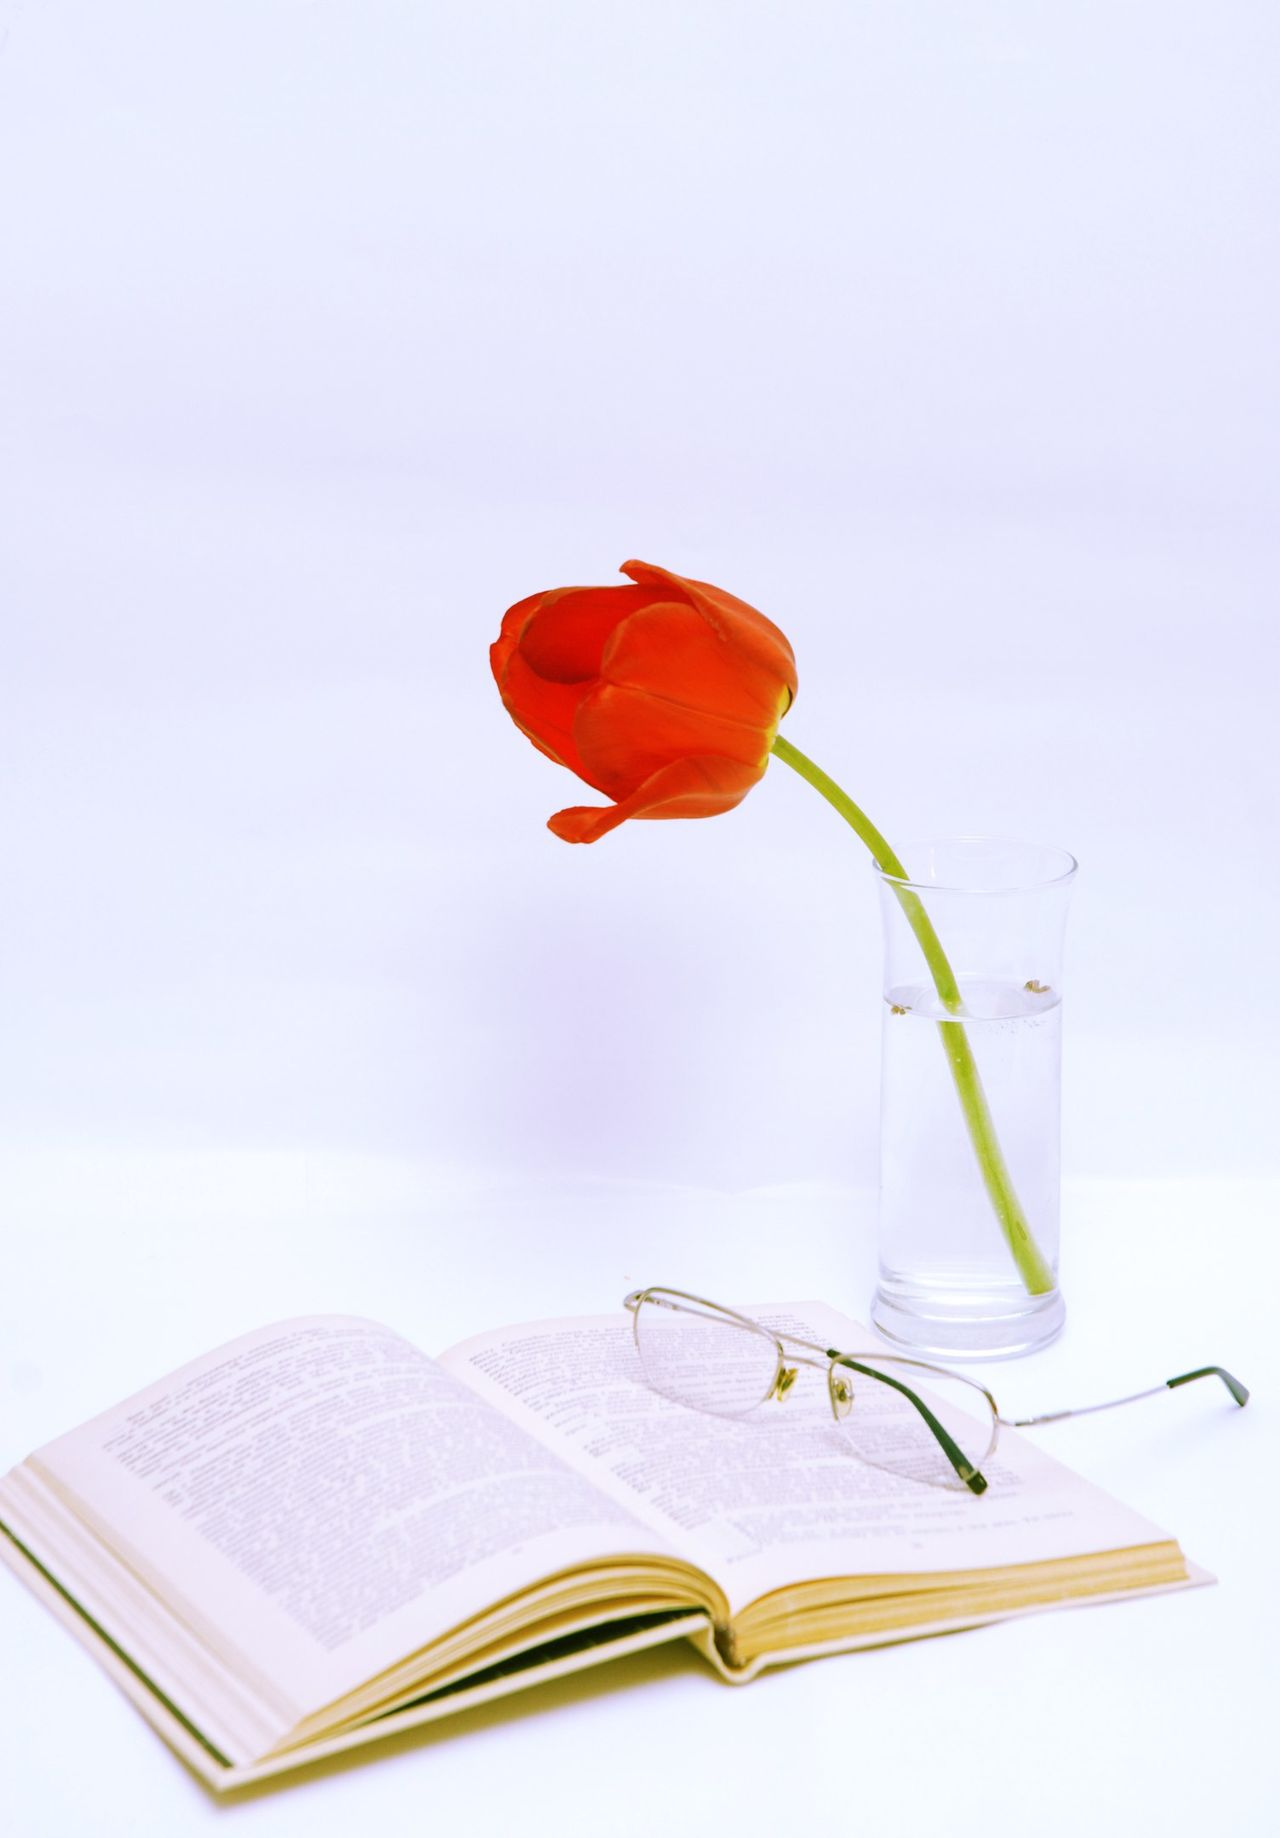 Beautiful stock photos of tulip, Beauty In Nature, Book, Drinking Glass, Education